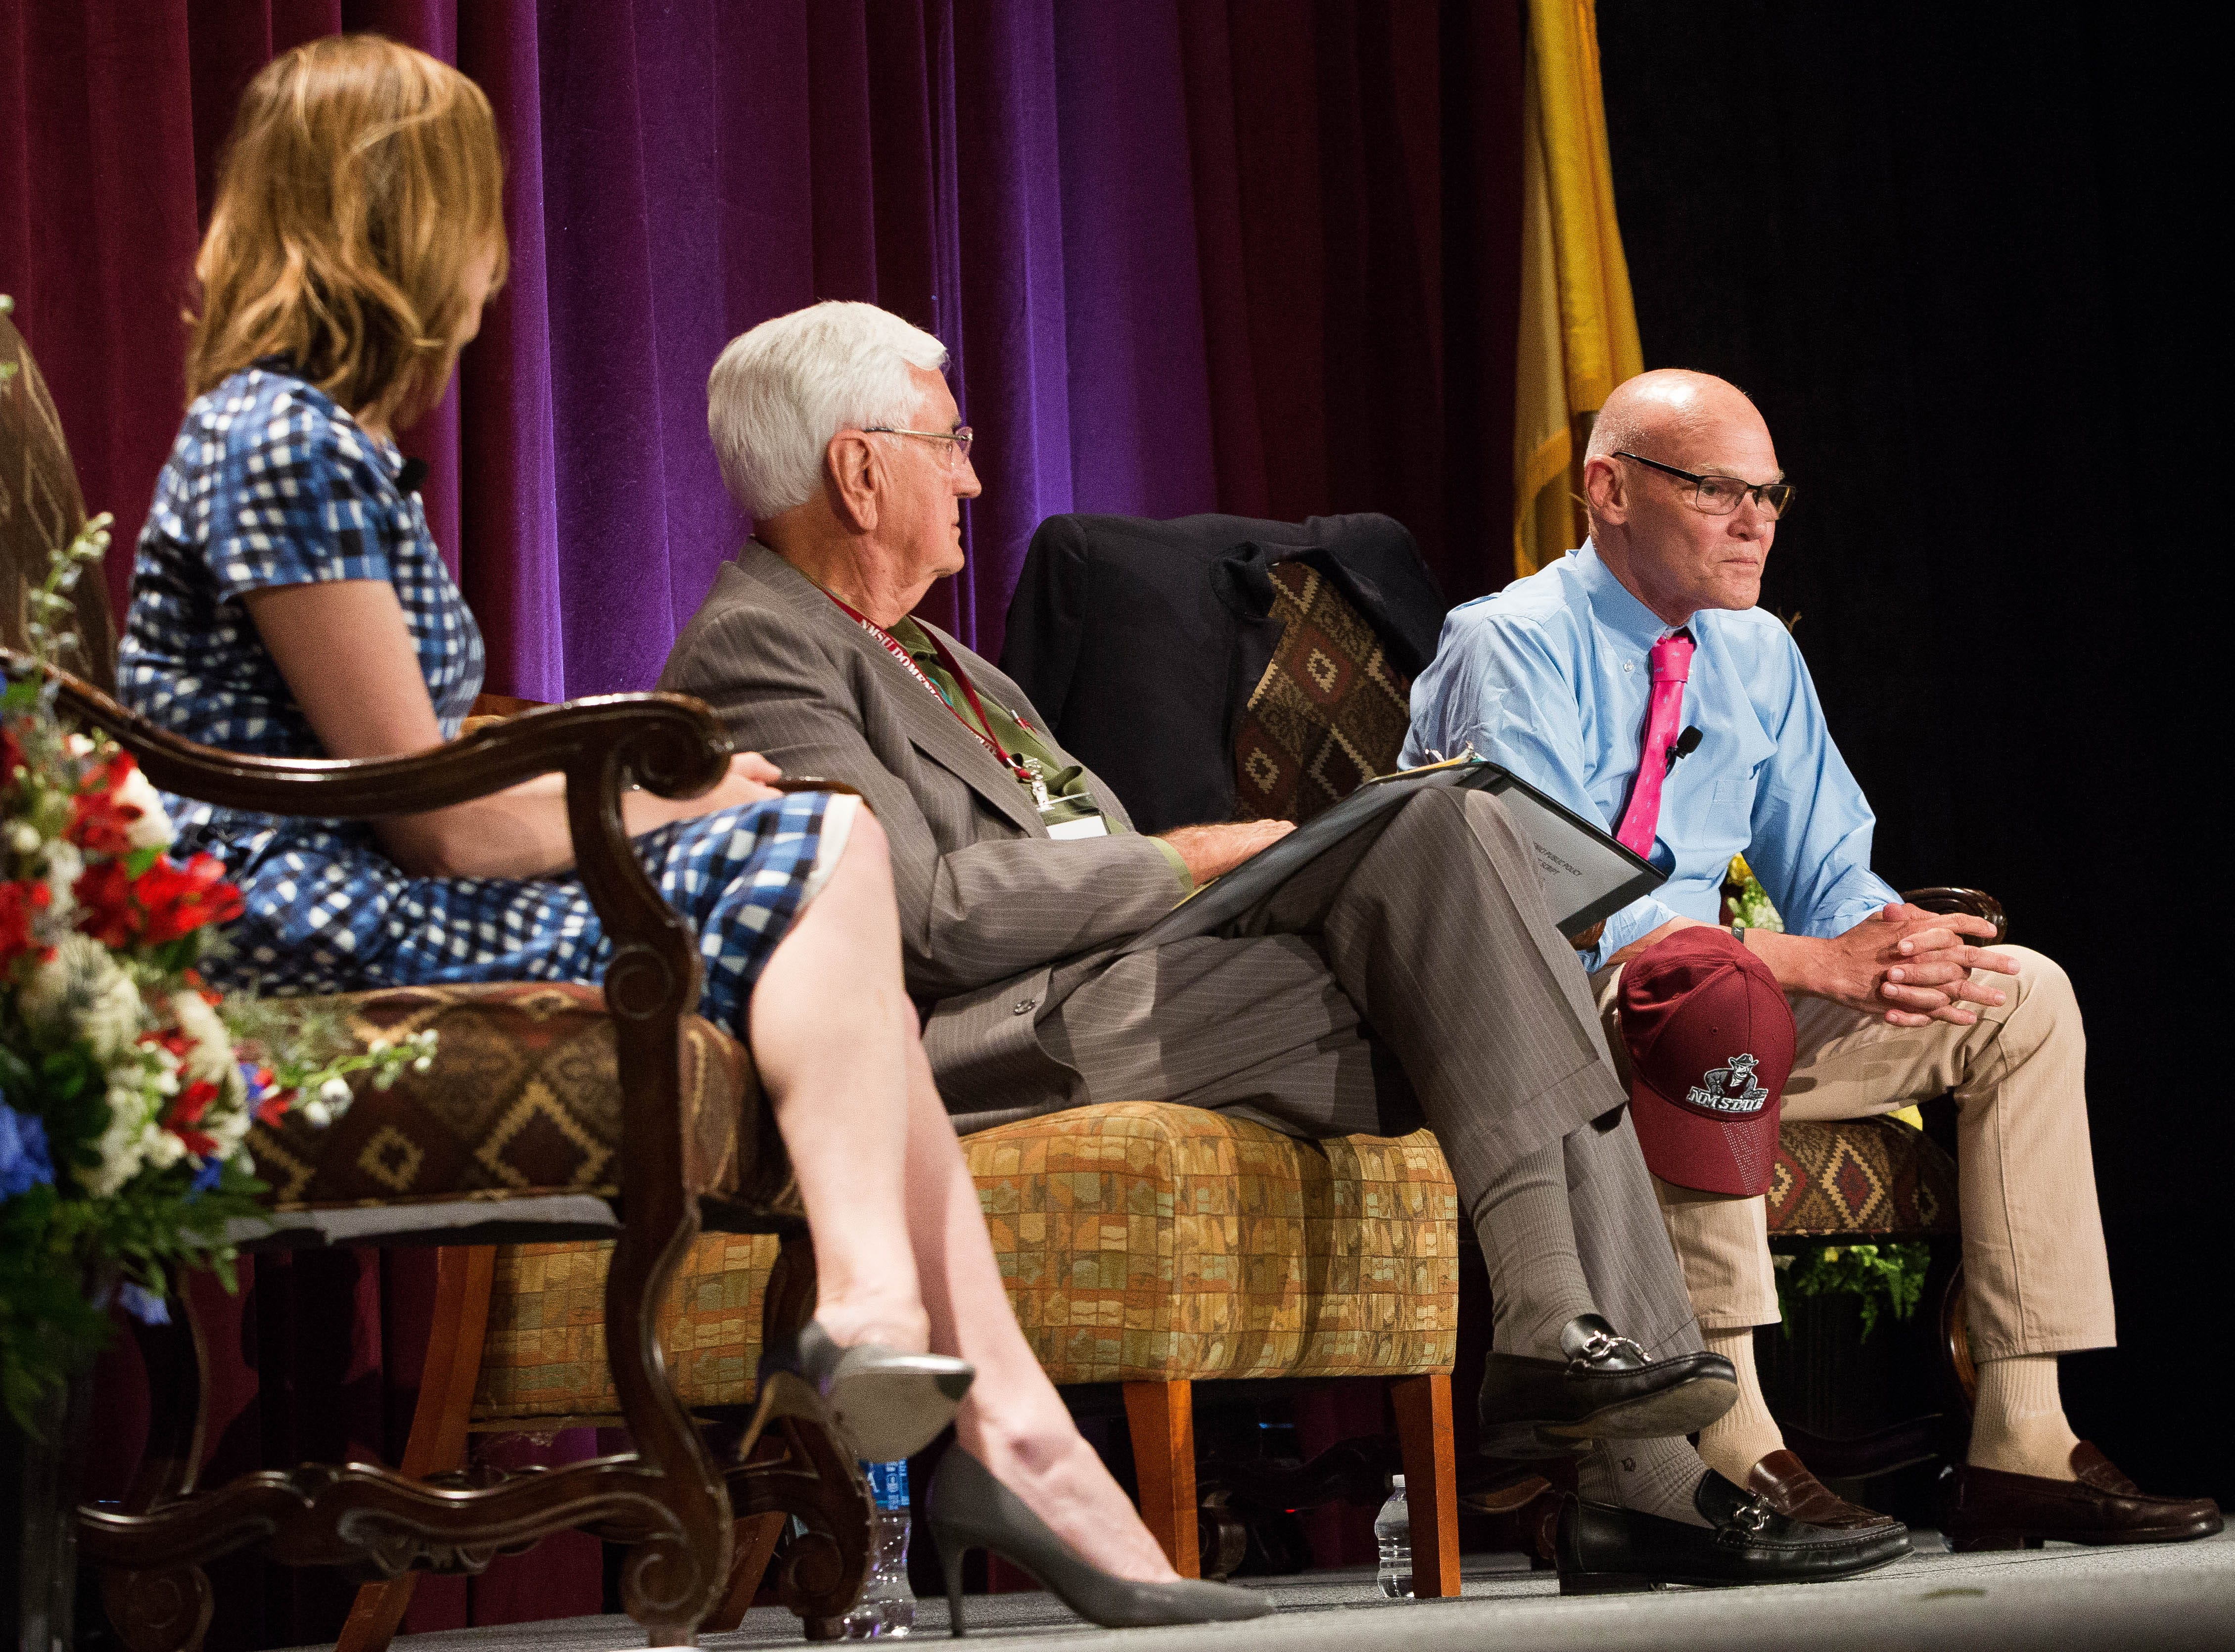 James Carville, right, political consultant, discuss the 2018 Mid Term elections and the Trump Presidency with Garry Curruthers, center, former New Mexico State University Chancellor and President and Kristen Soltis Anderson, left, co-founder and partner at Echelon Insights, during a panel discussion at the 2018 Domenici Public Policy Conference at the Las Cruces Convention Center, Thursday September 13, 2018.